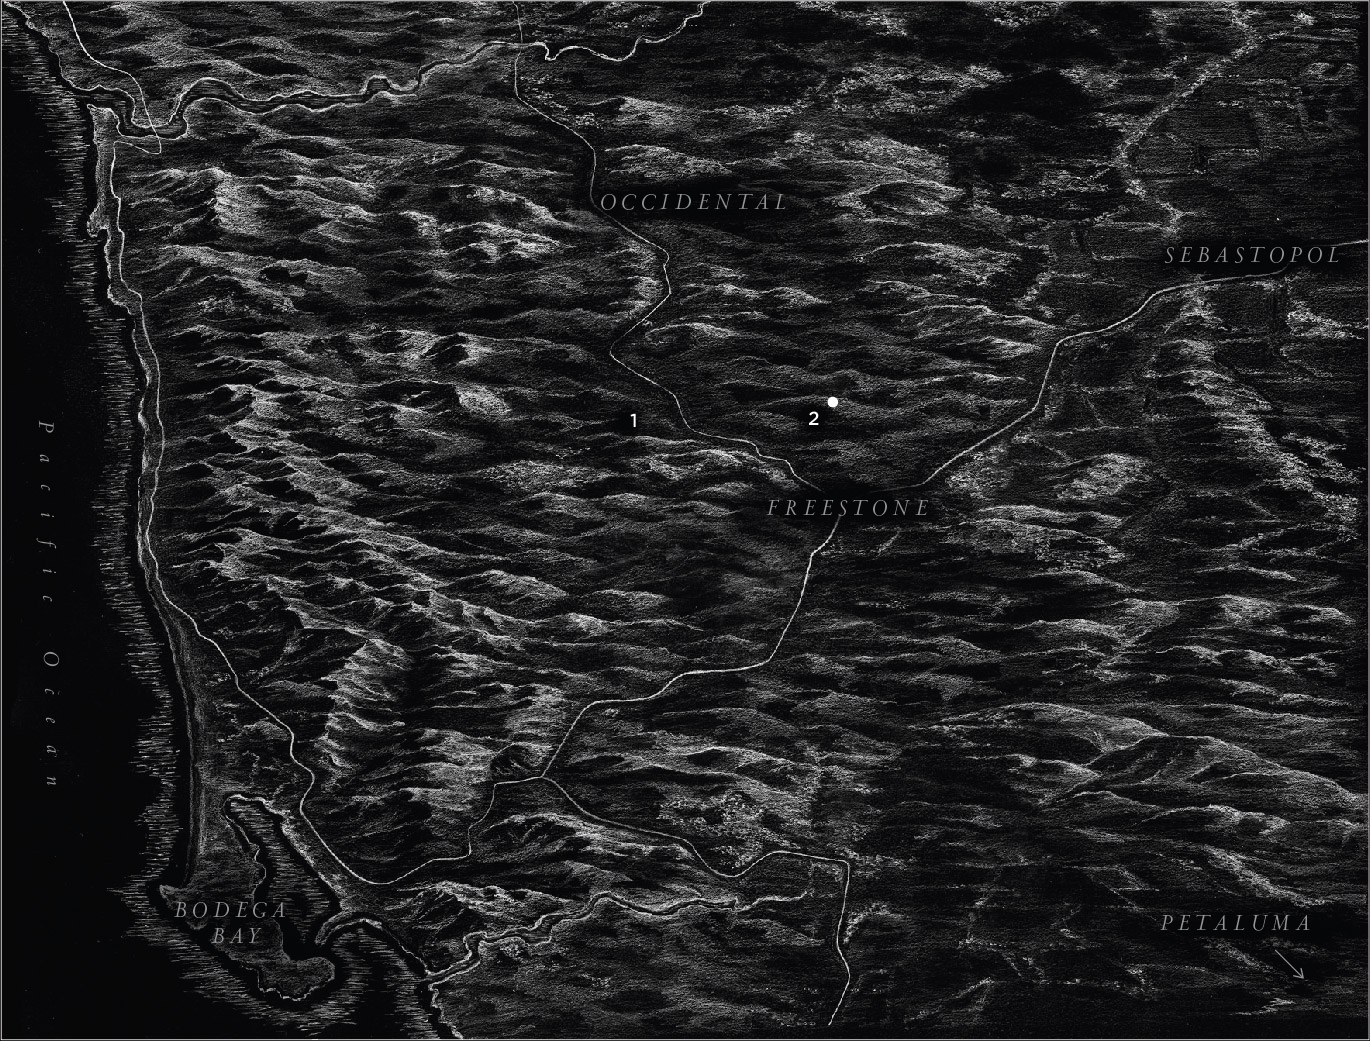 black and white map of the Sonoma Coast showing the two Joseph Phelps vineyards